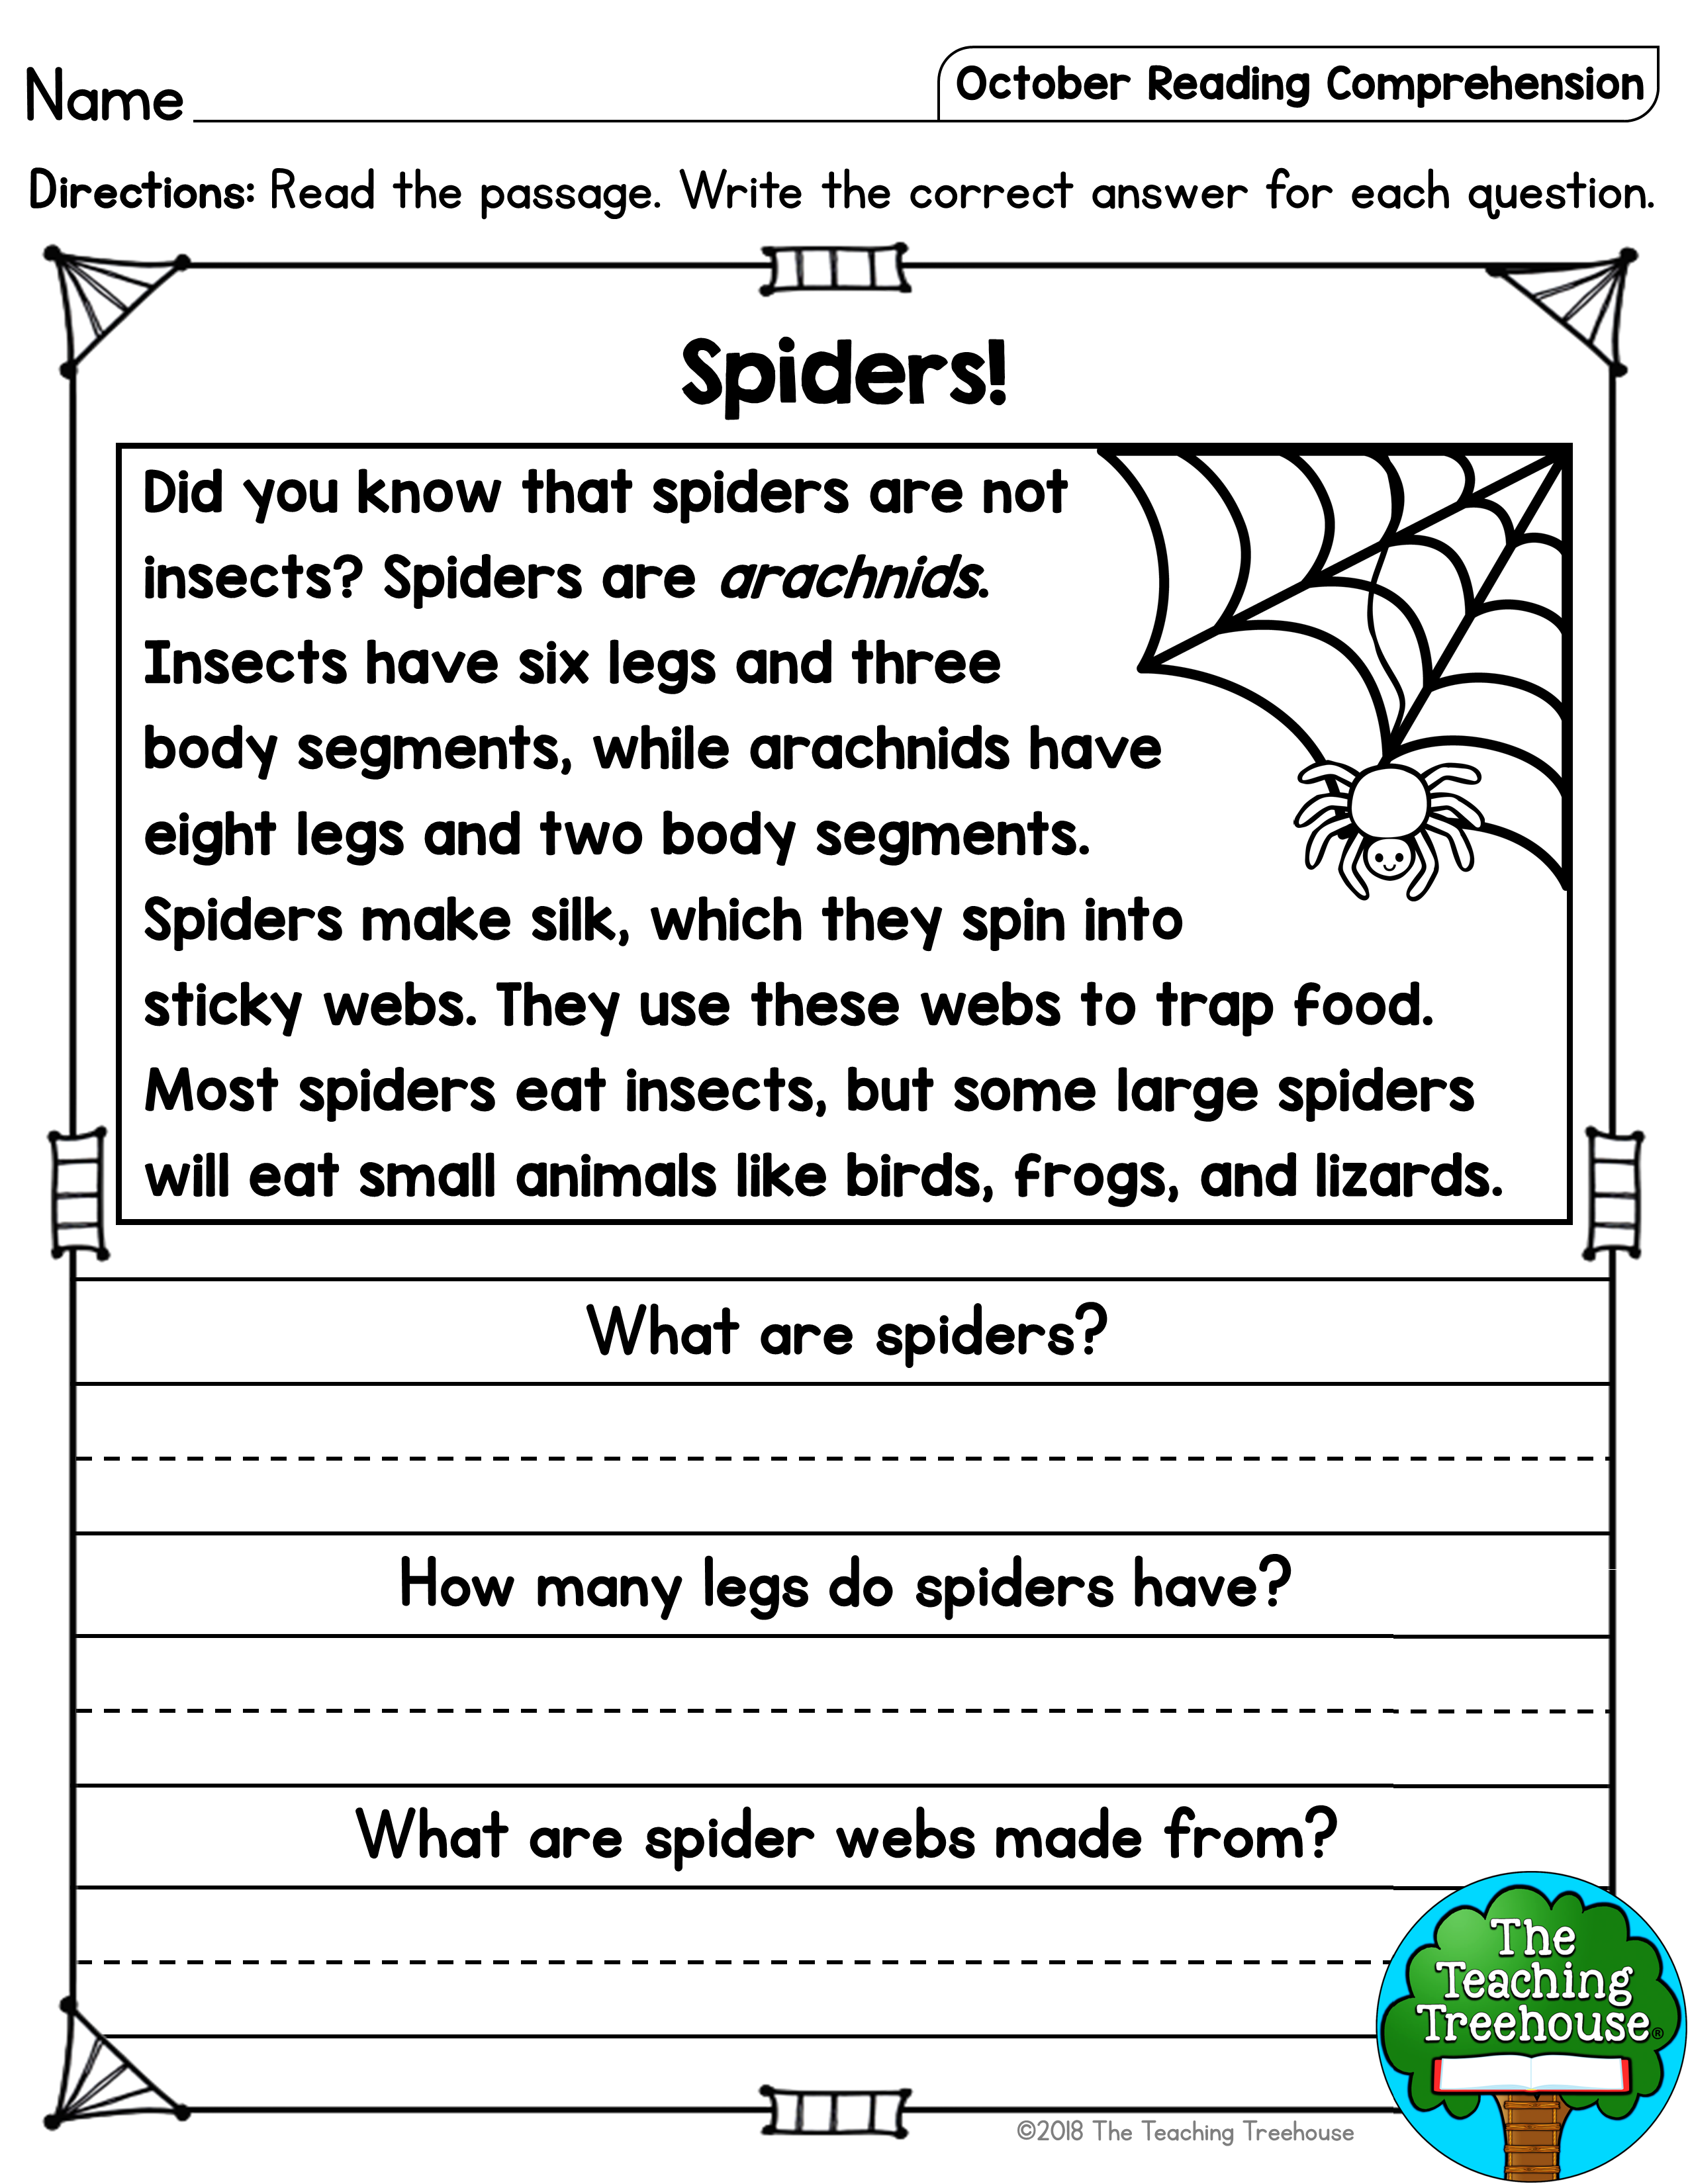 October Reading Comprehension Passages For Kindergarten And First Grade Reading Comprehension Passages Reading Comprehension Lessons First Grade Reading Comprehension [ 3300 x 2550 Pixel ]